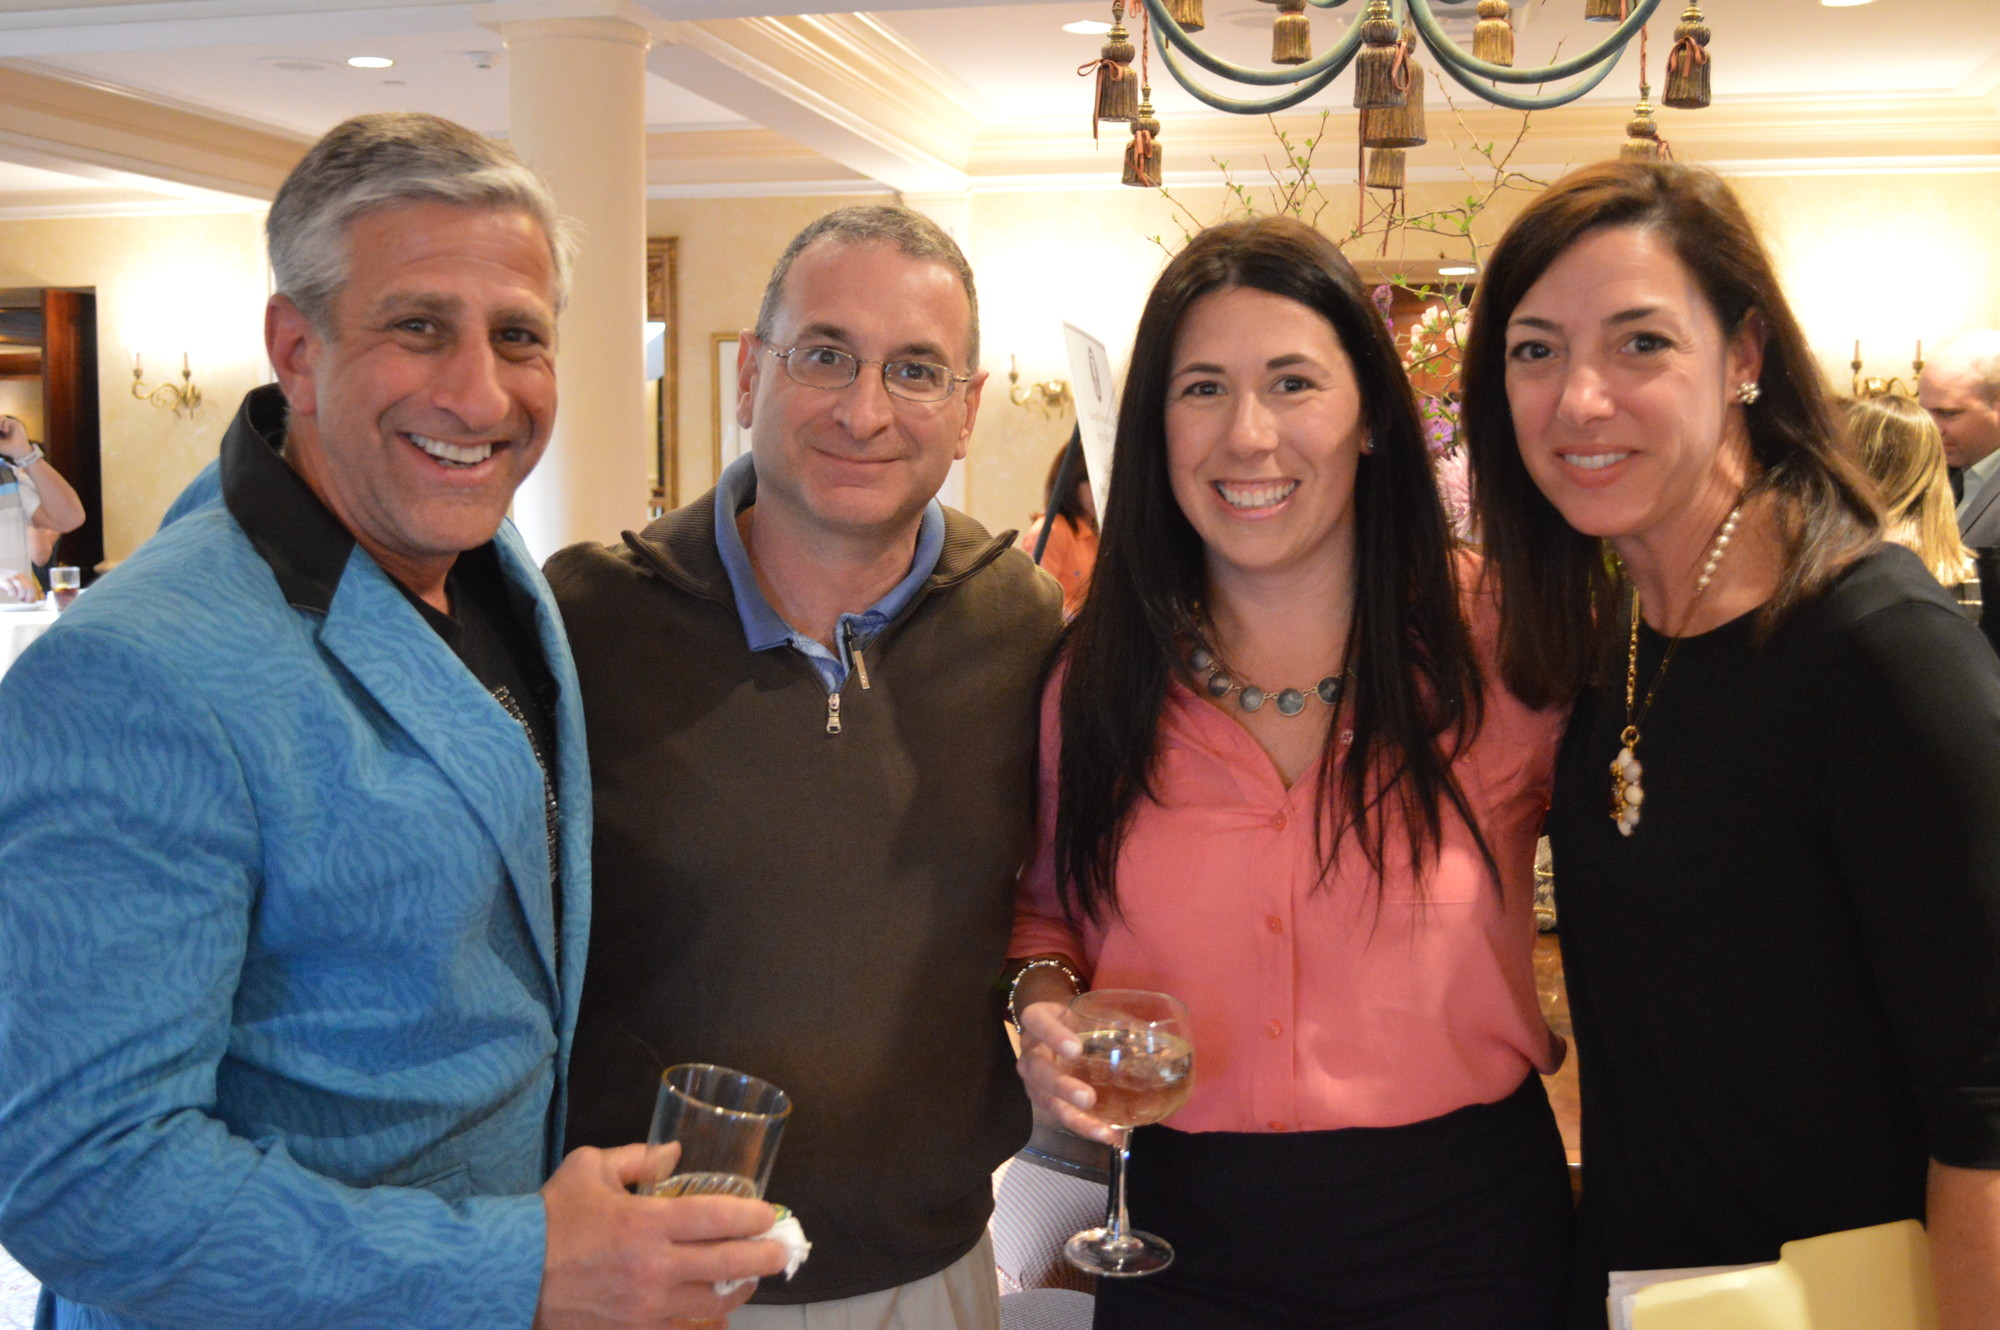 Lawrence Woodmere Academy held its annual spring fundraiser at The Woodmere Club. From left were Jay Arnow, Tom Iannelli, Kristy Arnow and Barbara Iannelli were part of the attendees who helped to raise $132,000 for the school.